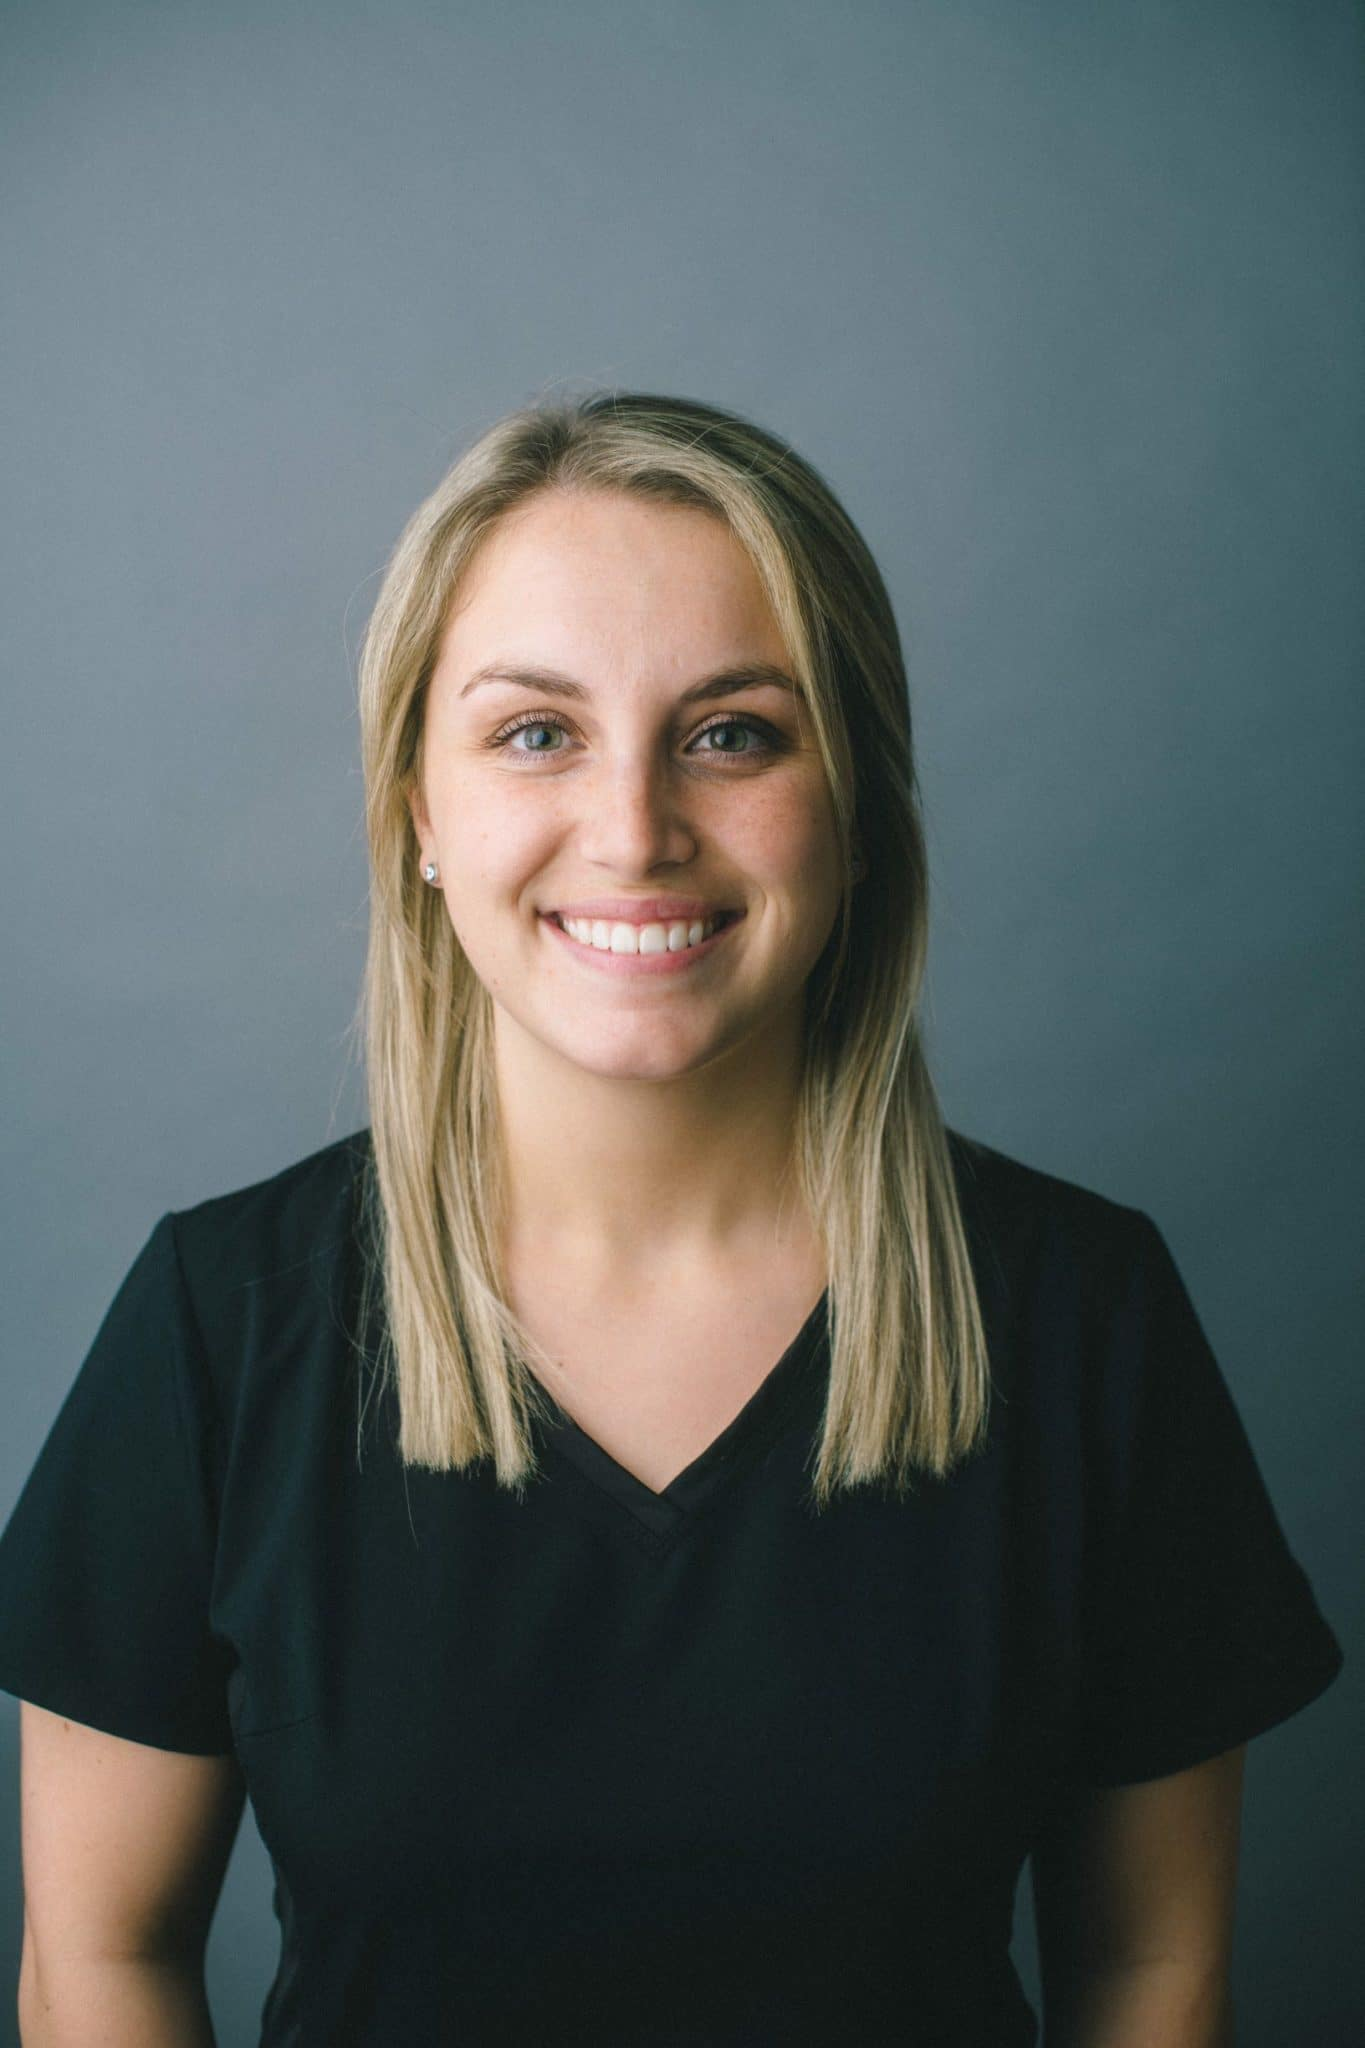 Olivia Nave, R.D.H at Damascus Dental Group